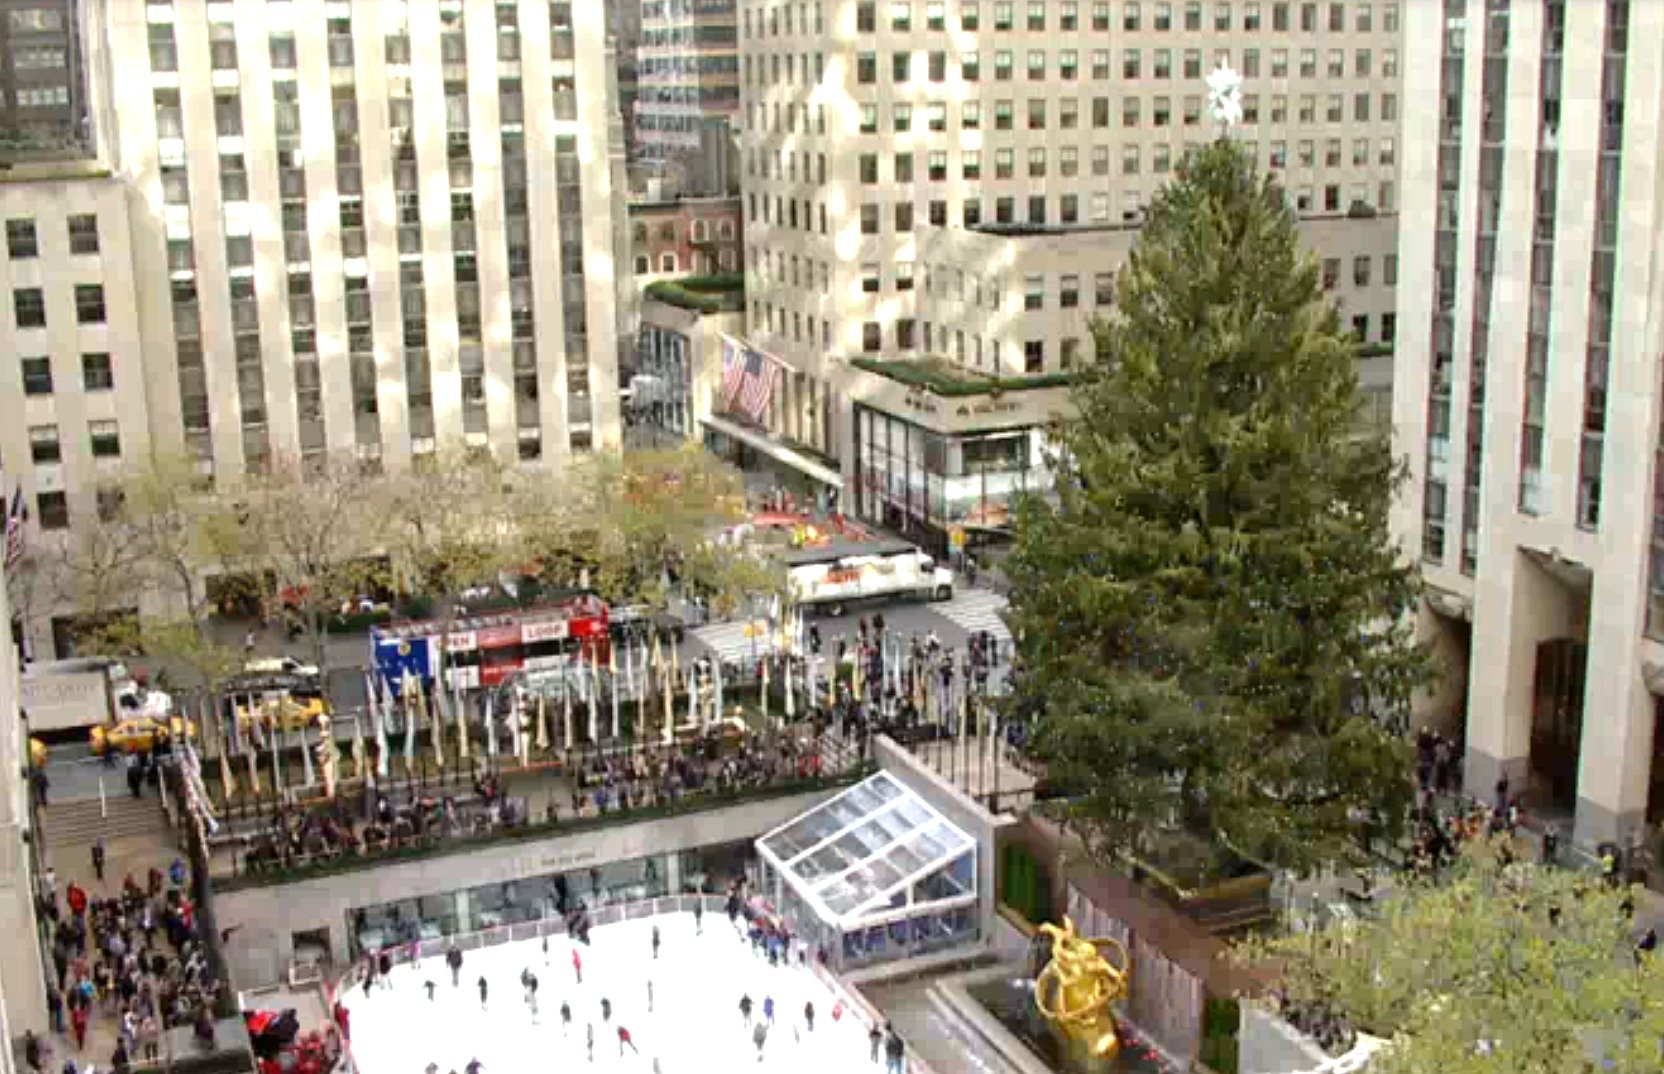 Camera Rockefeller Center : Watch a live feed of the rockefeller center christmas tree; new